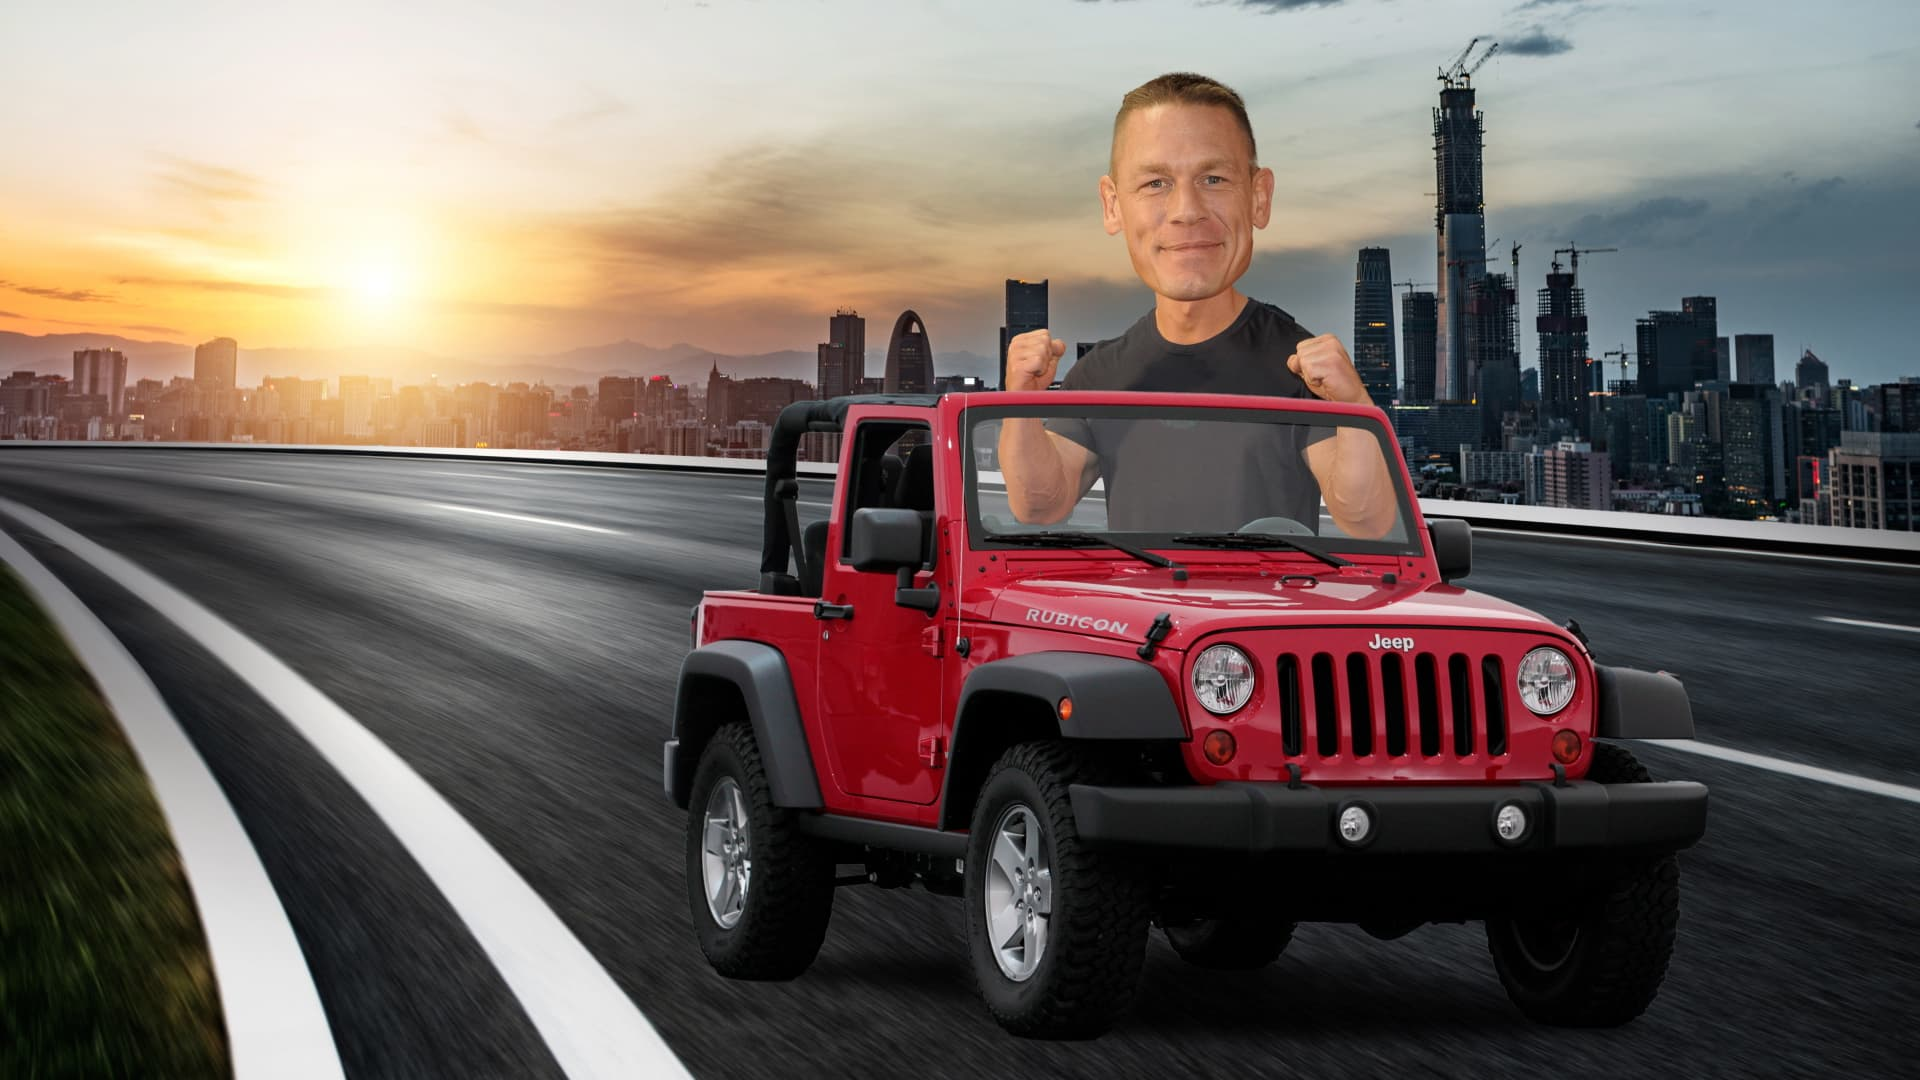 John Cena Bought A 1989 Jeep Wrangler With His First Wwe Paycheck